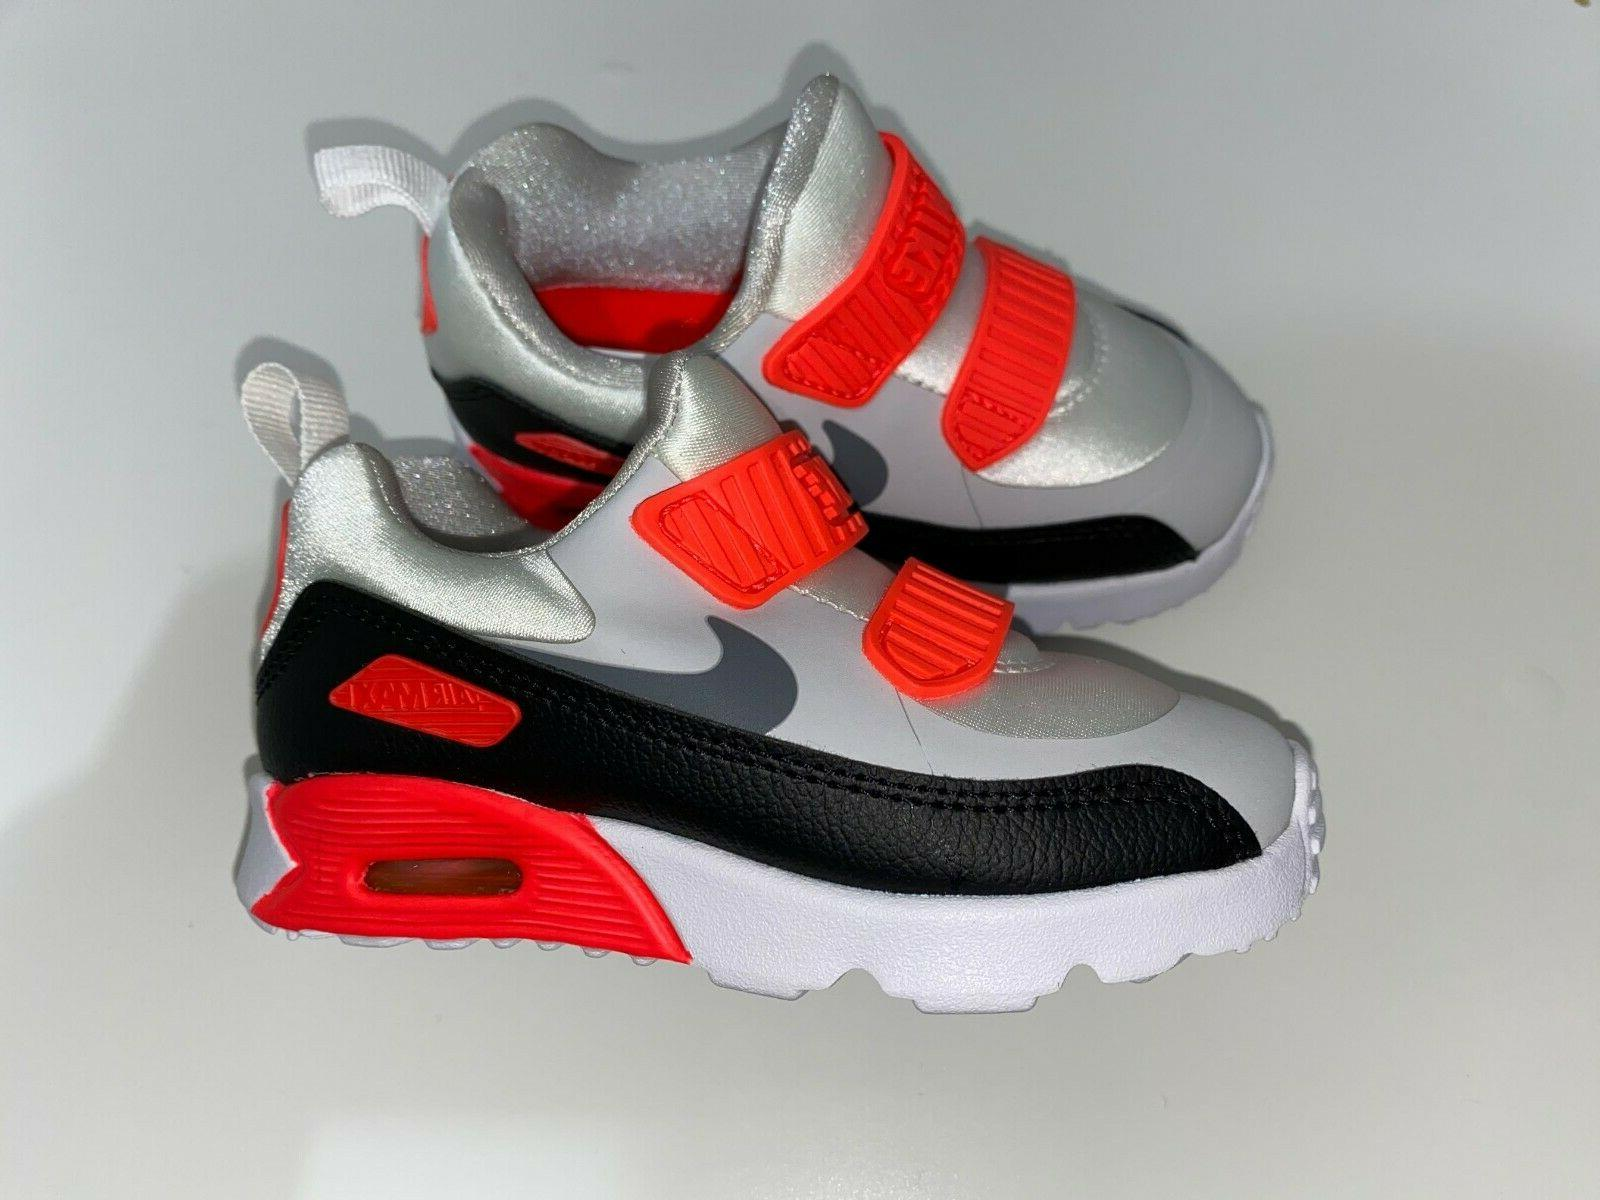 Nike Air Max Tiny 90 Shoes Size 7C